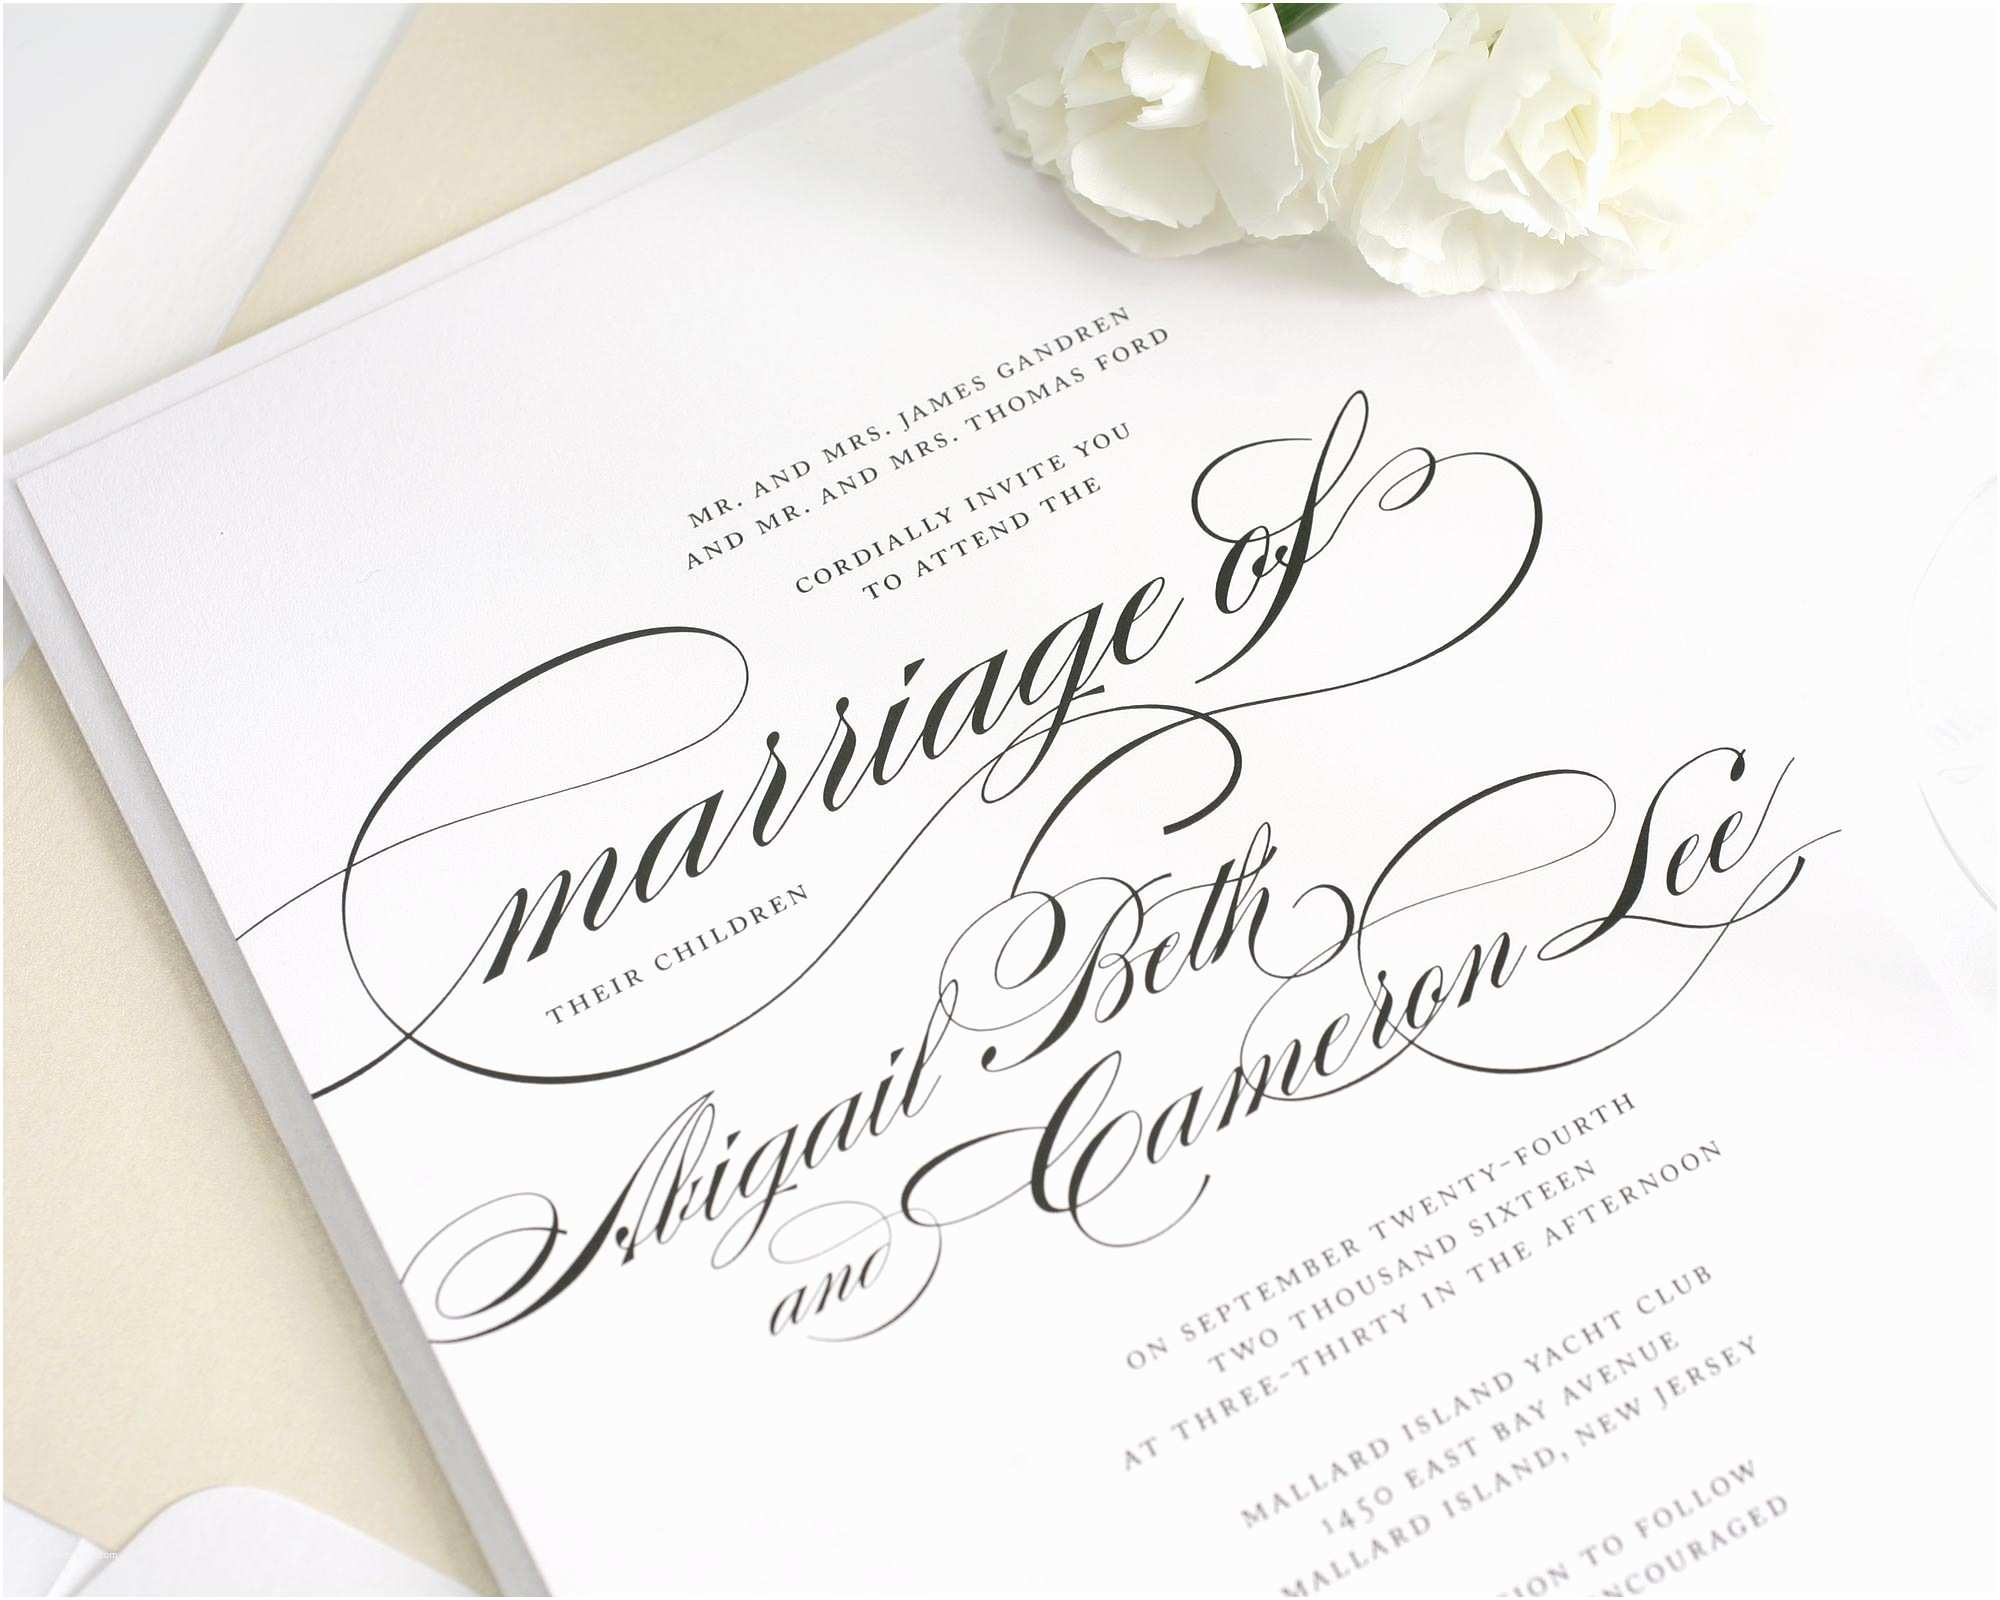 Wedding Invitation Video Beautiful Wedding Invitation In Black and White with